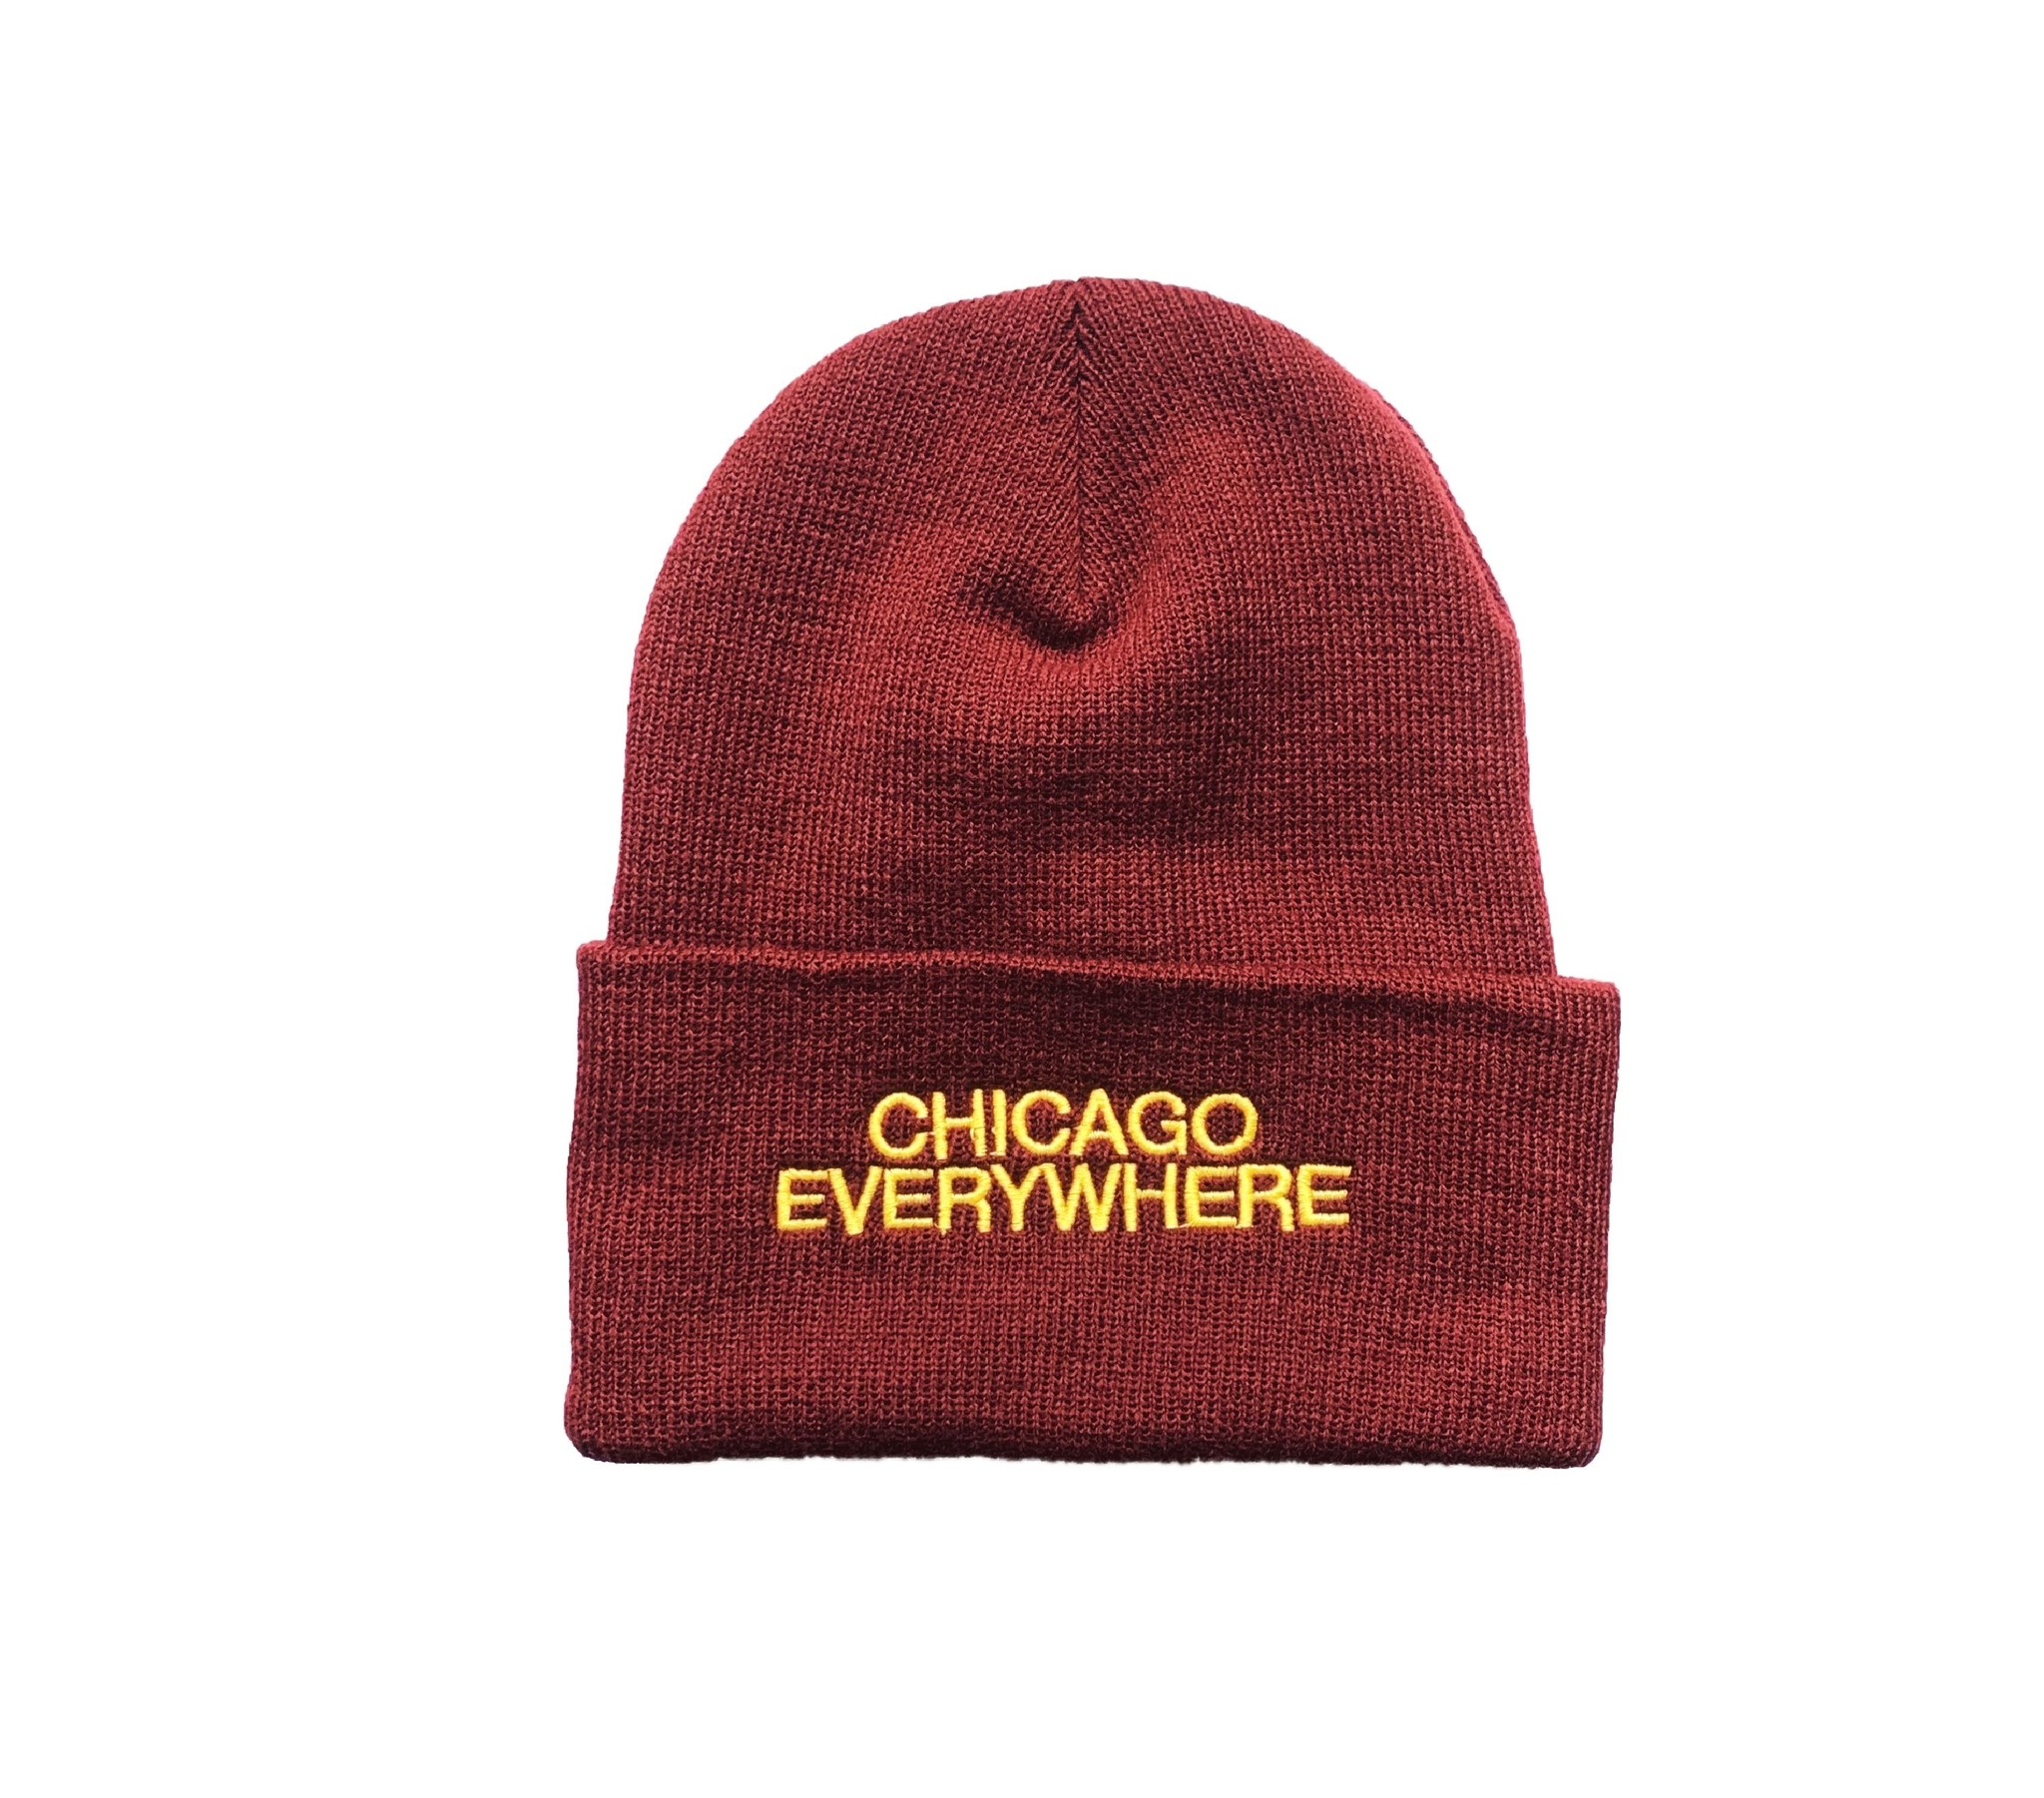 Jugrnaut Jugrnaut Two Sided Beanie Maroon